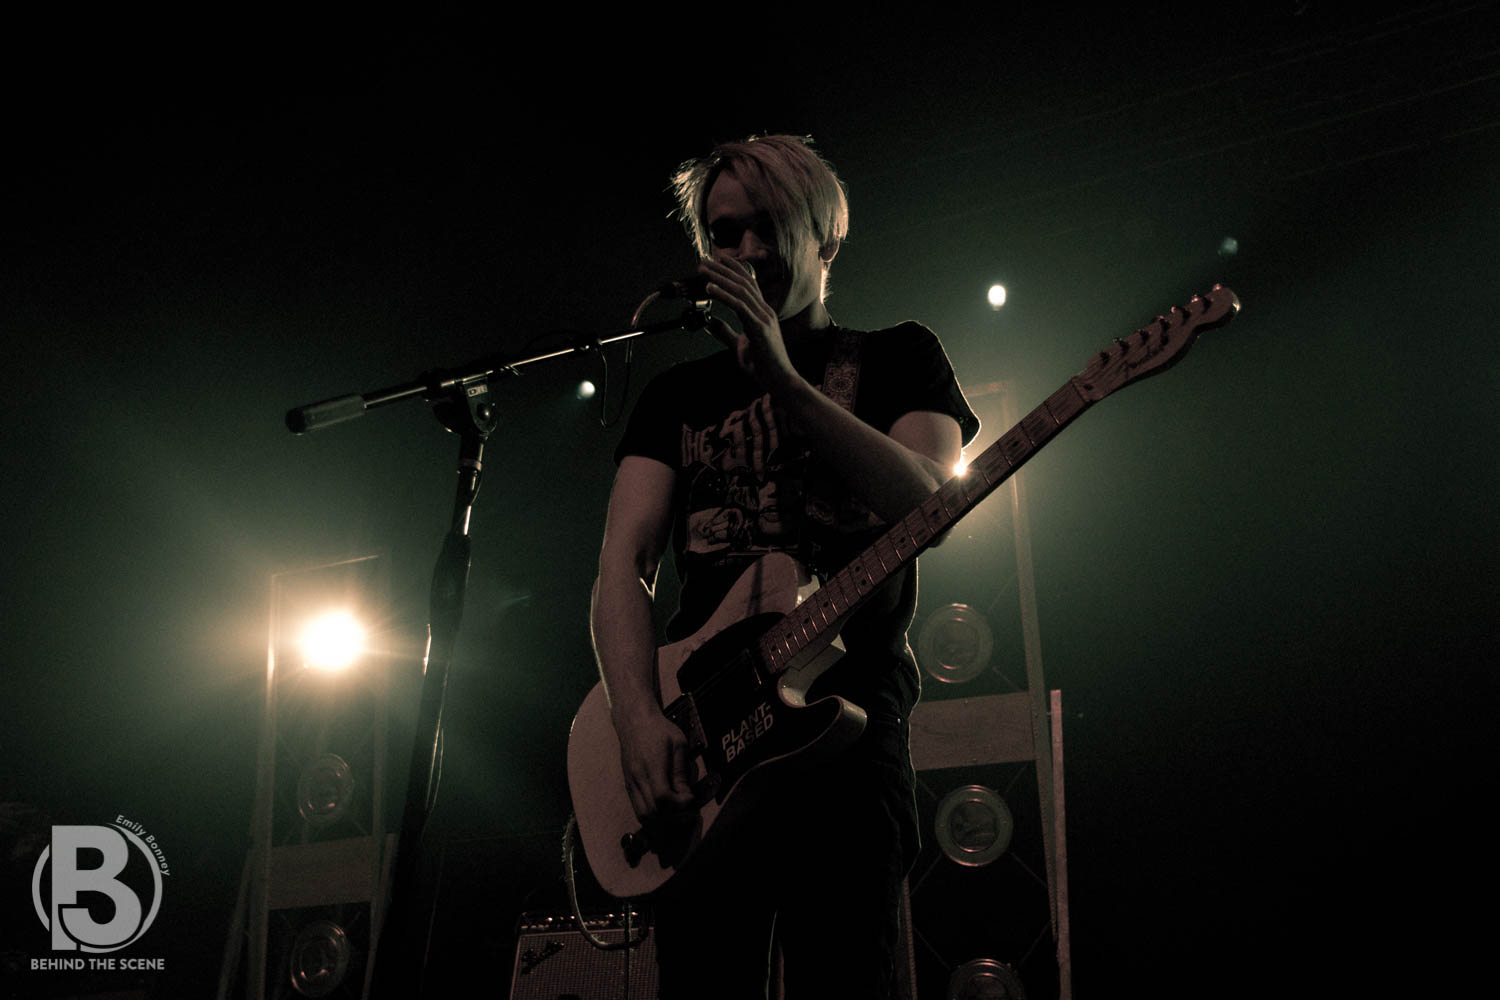 031219 Badflower EB-0079.jpg